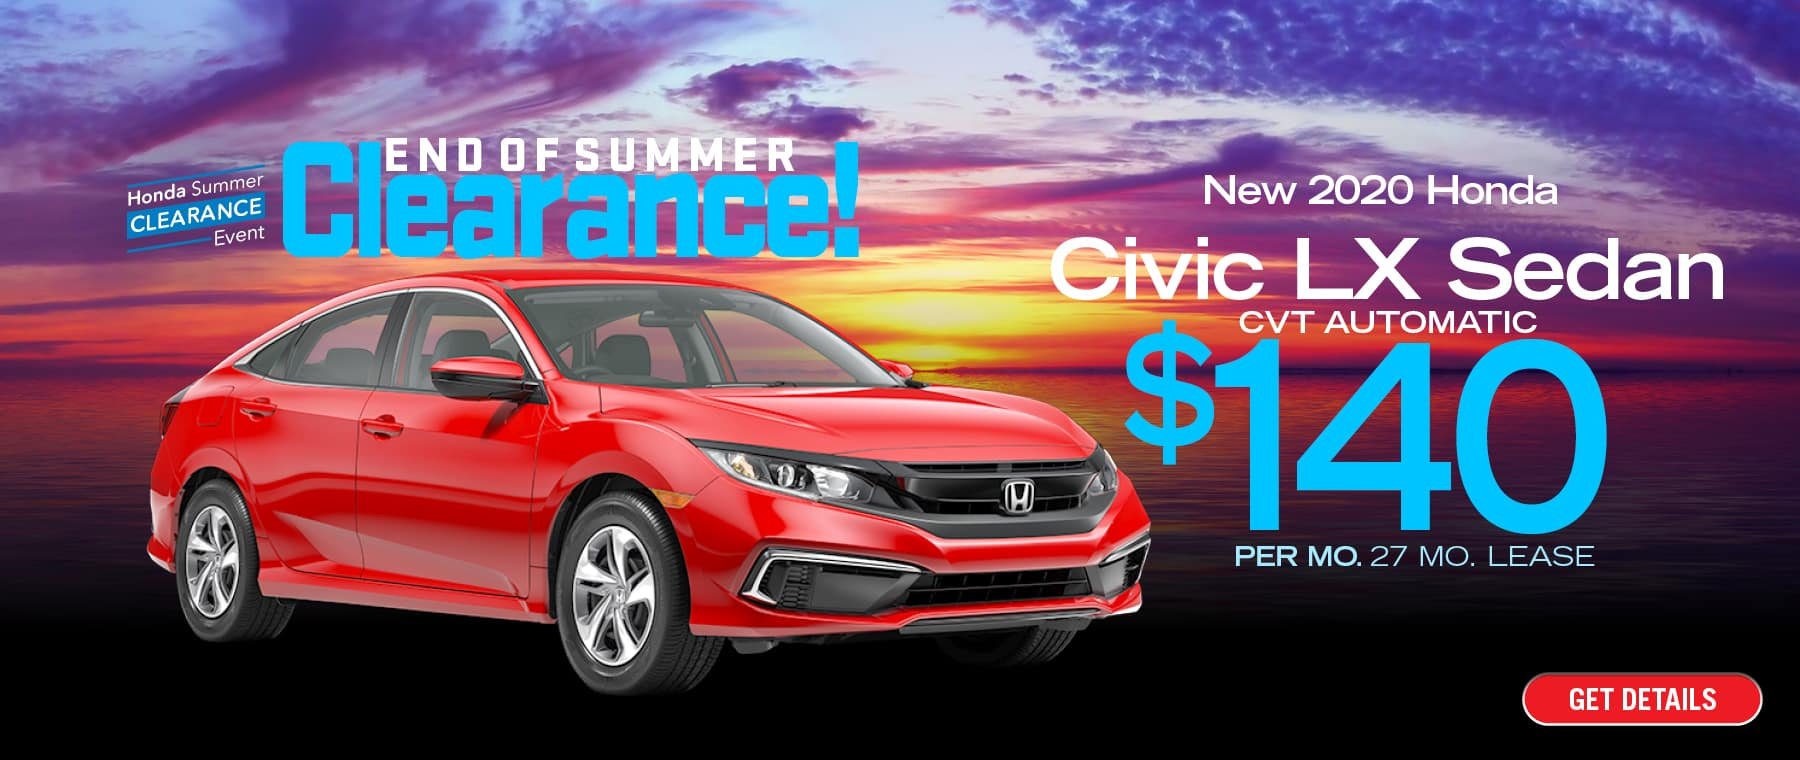 Lease a Civic for $140